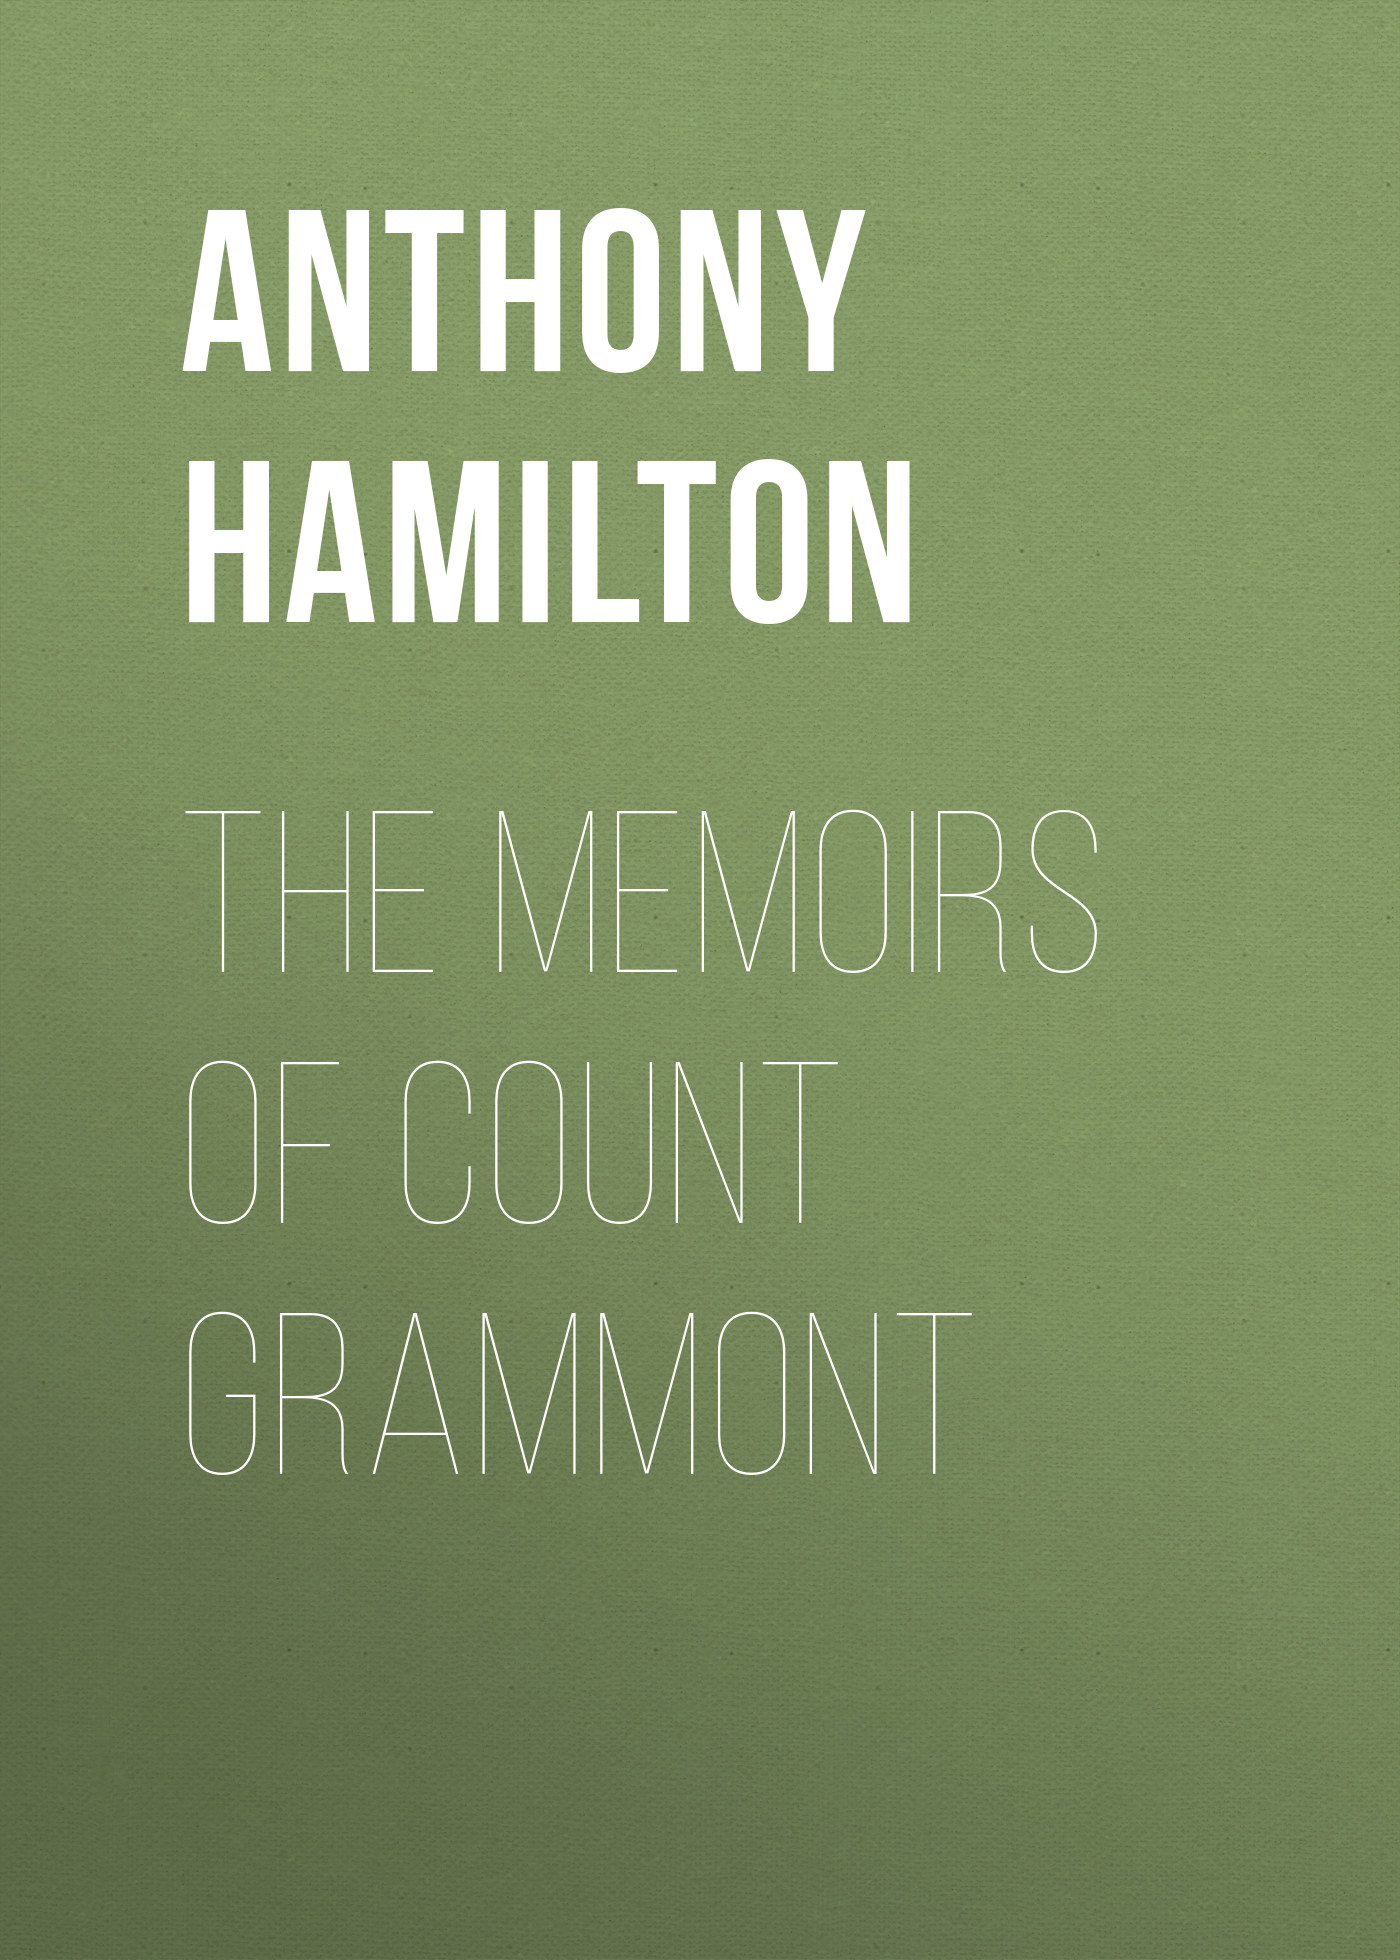 Anthony Hamilton The Memoirs of Count Grammont christina hollis the count of castelfino